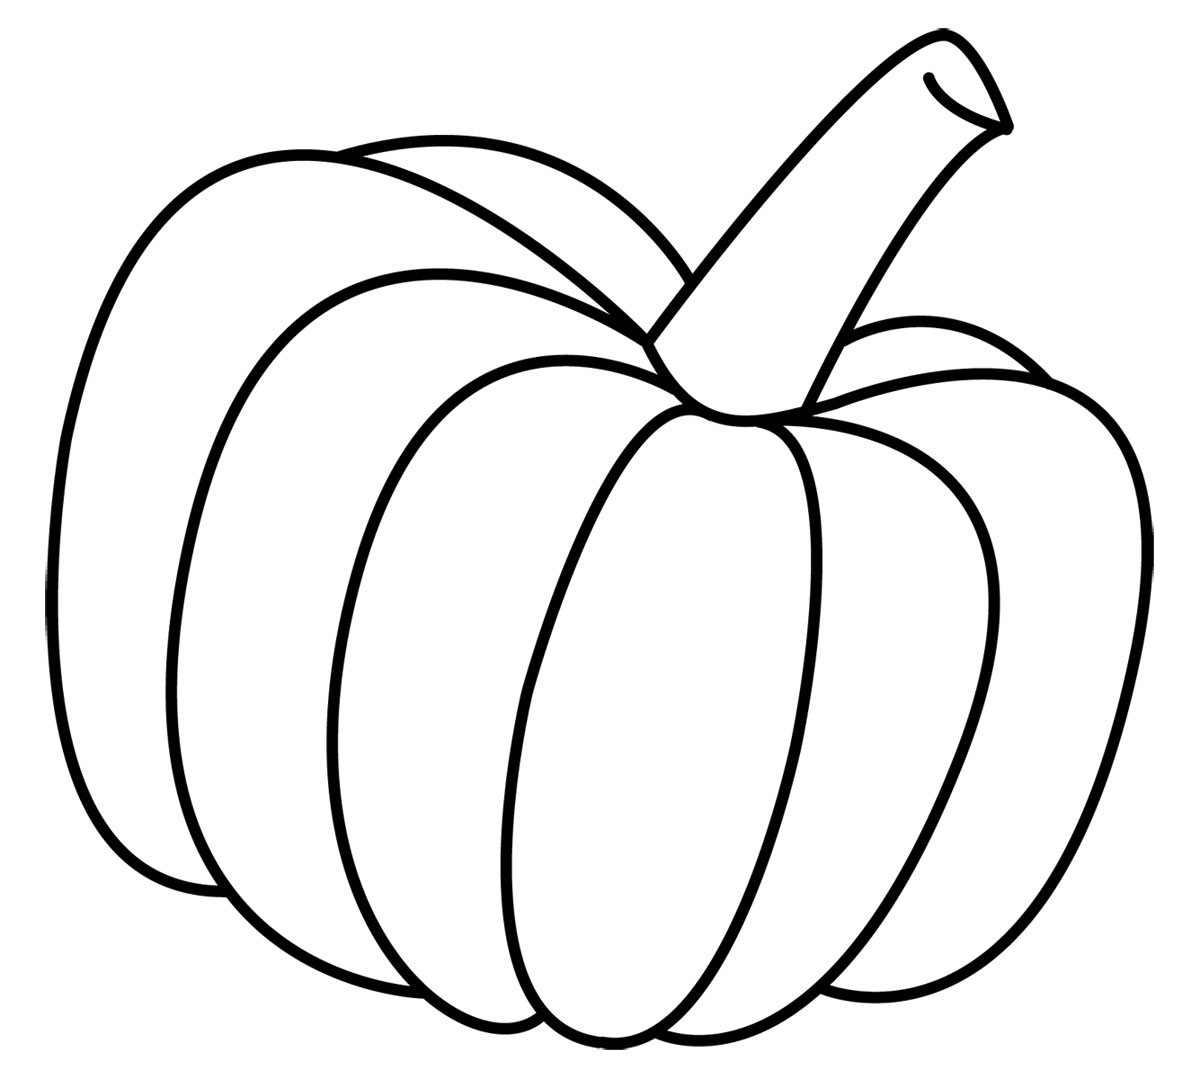 pumpkin clip art black and white clipart panda free clipart images rh clipartpanda com halloween pumpkin clipart black and white pumpkin clipart black and white